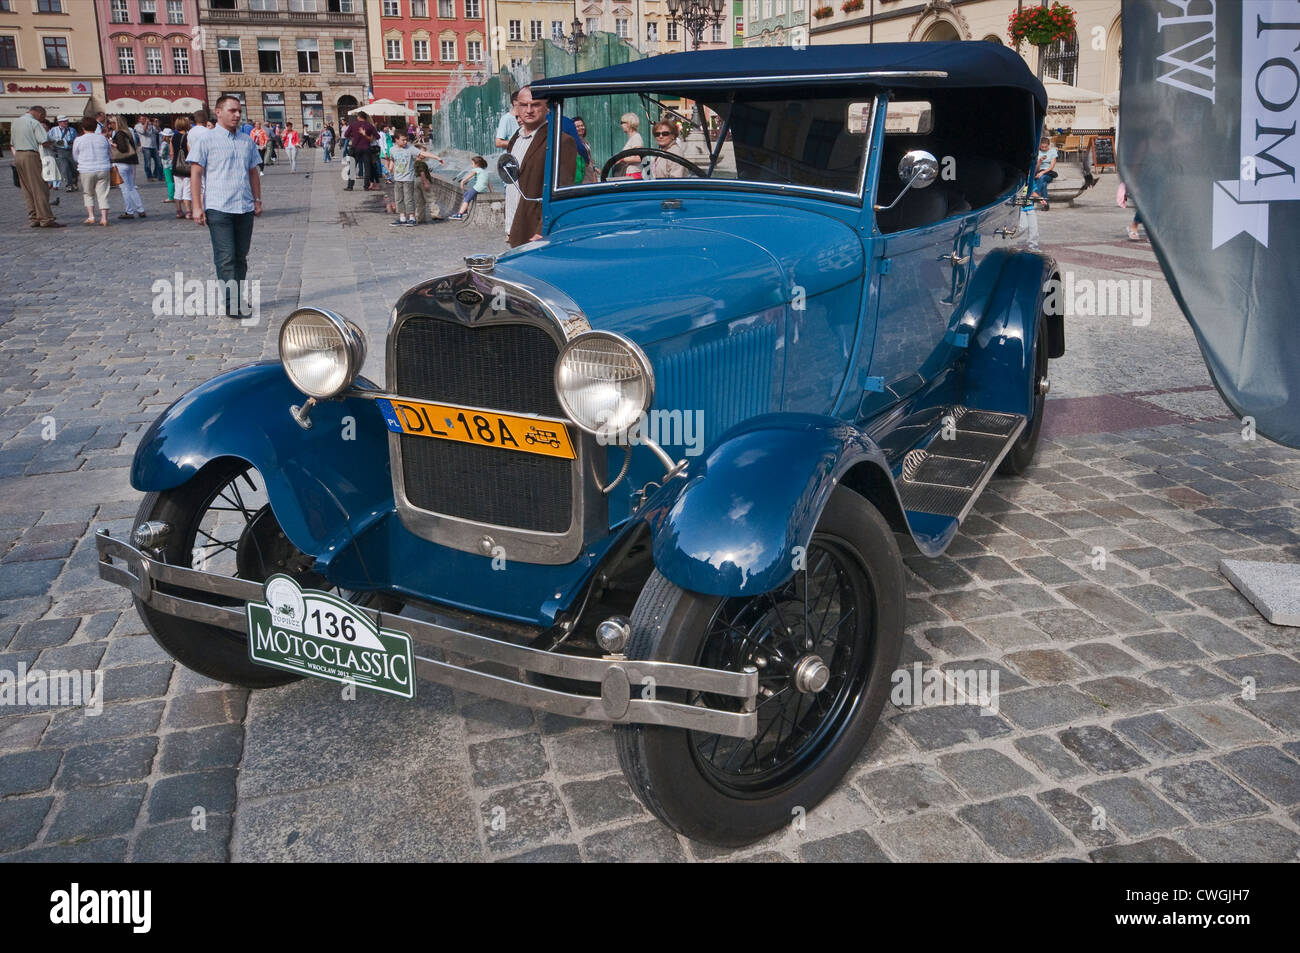 1930s Fort Model A at Motoclassic car show at Rynek (Market Square) in Wroclaw, Lower Silesia, Poland - Stock Image